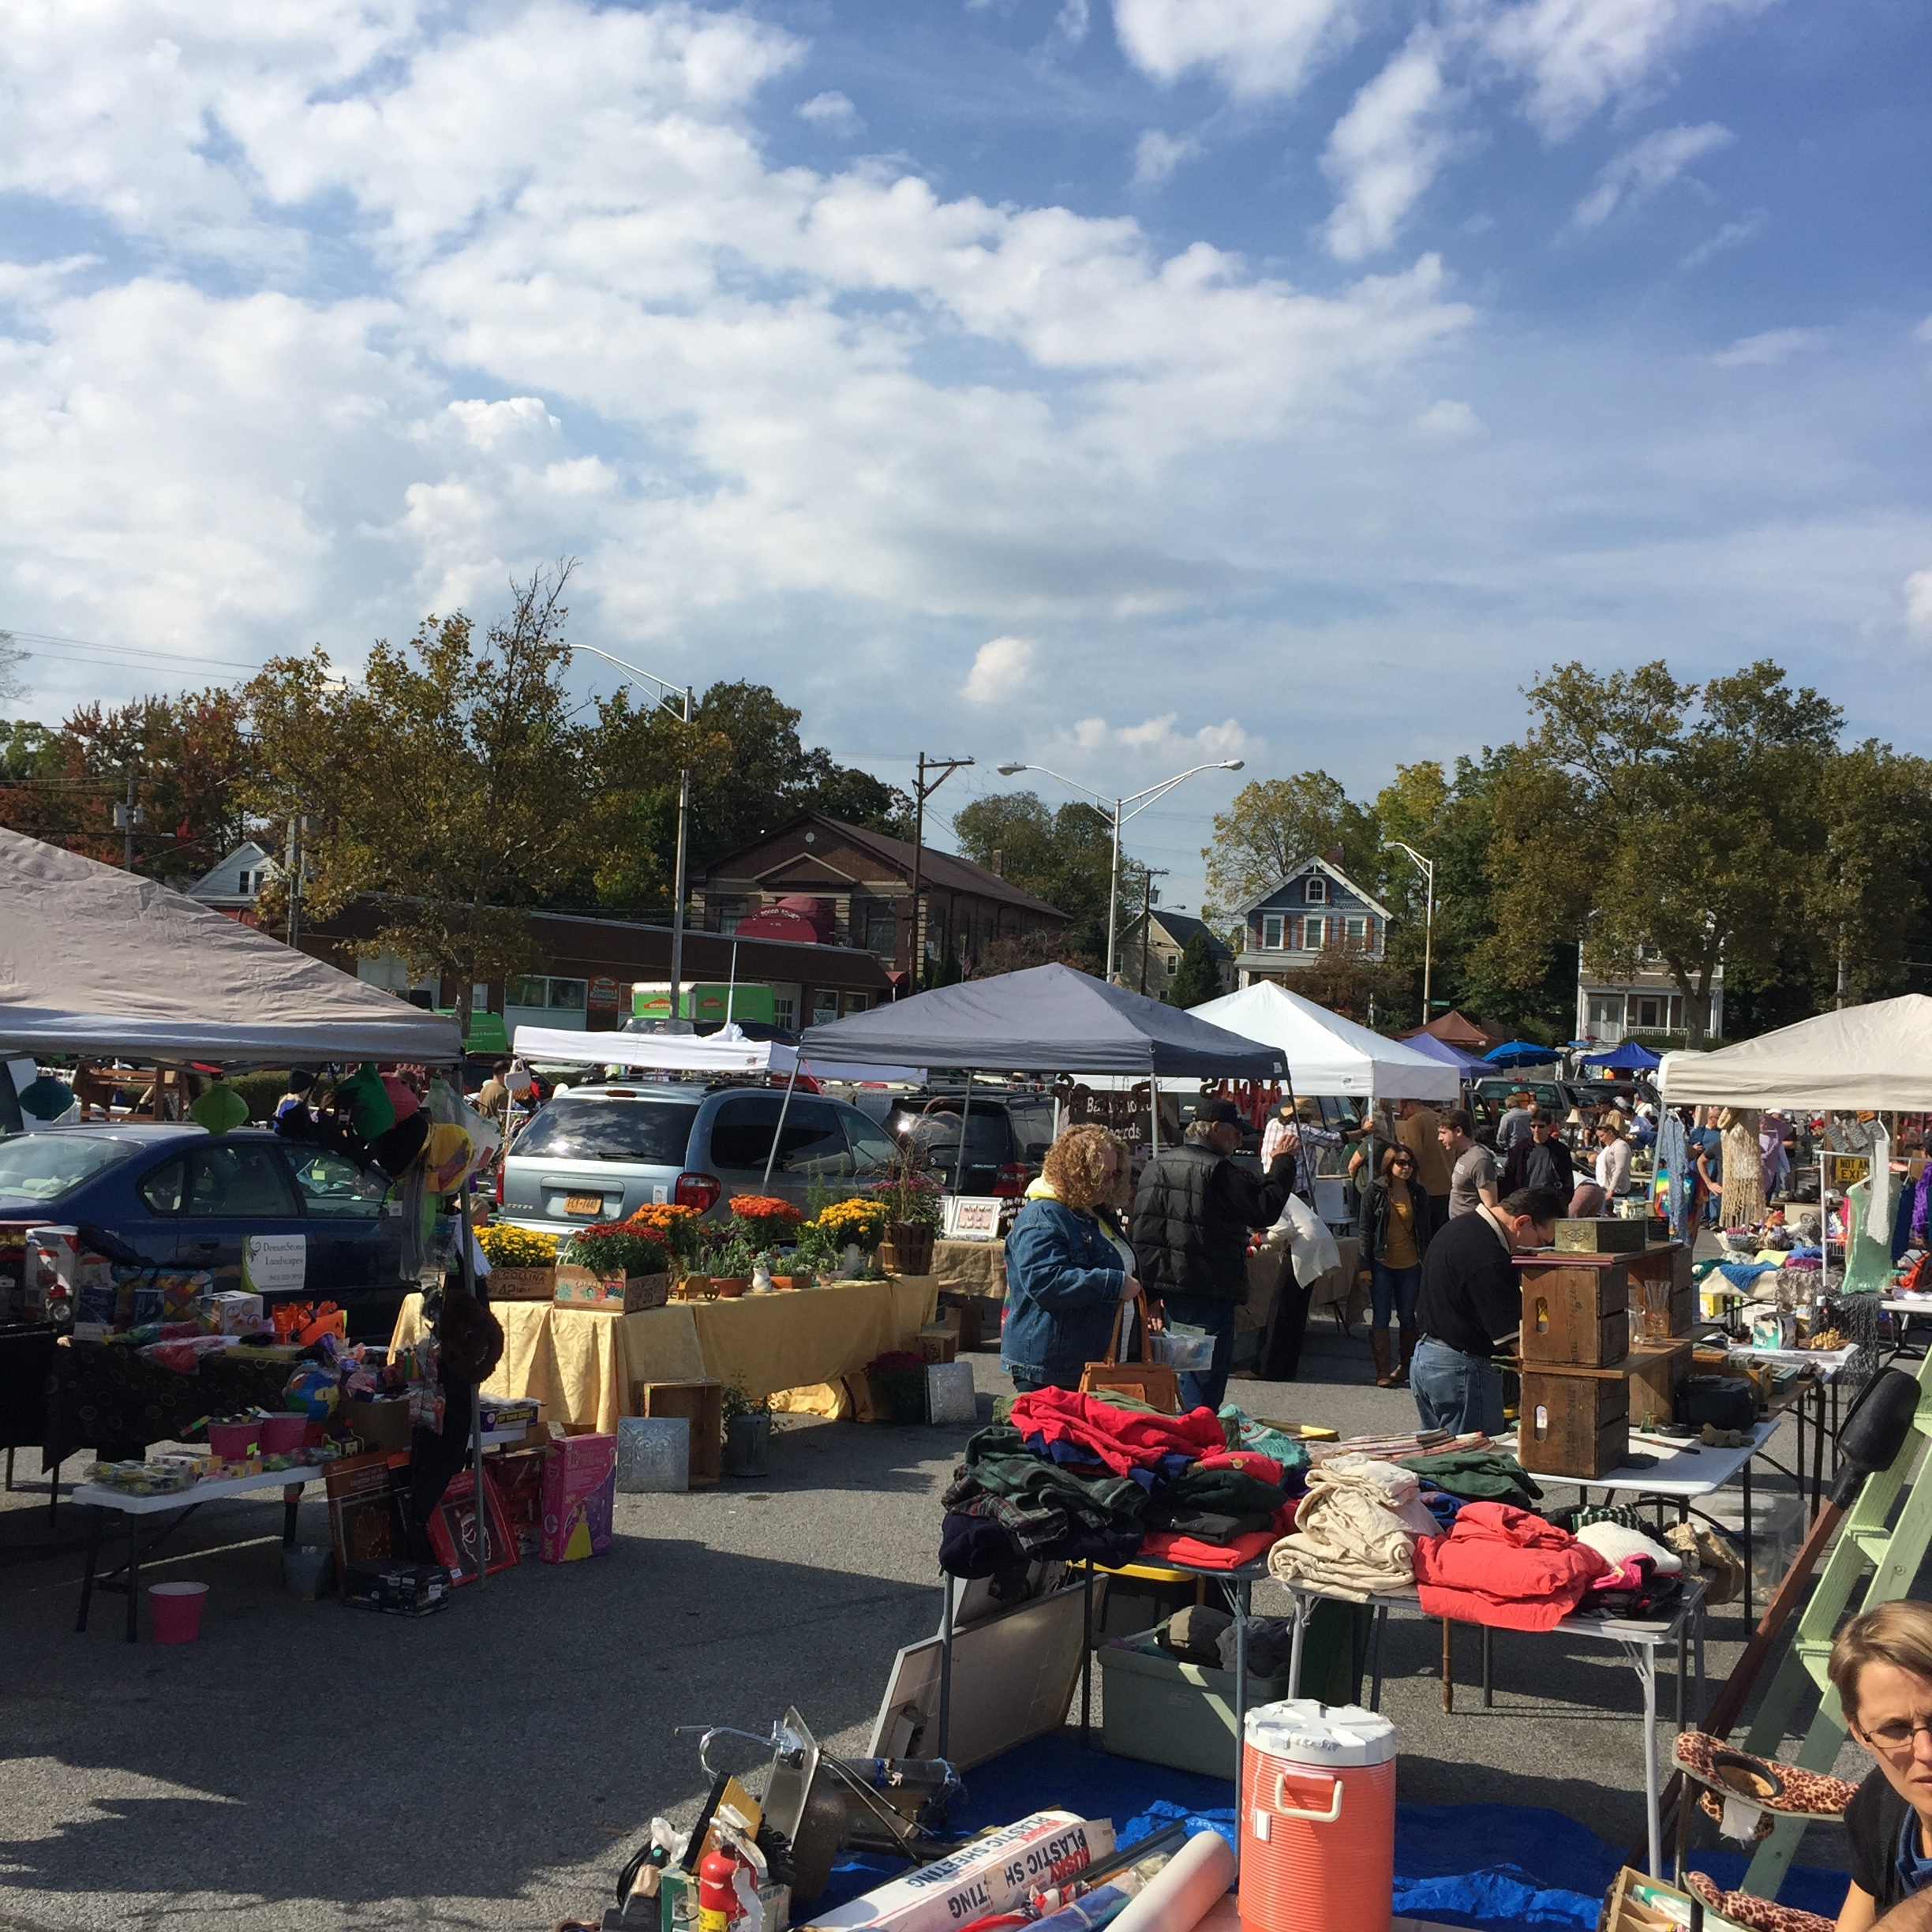 The Beacon Flea was packed with different vendors, several of whom stayed past the usual closing hour of 3 pm because the crowd remained strong.